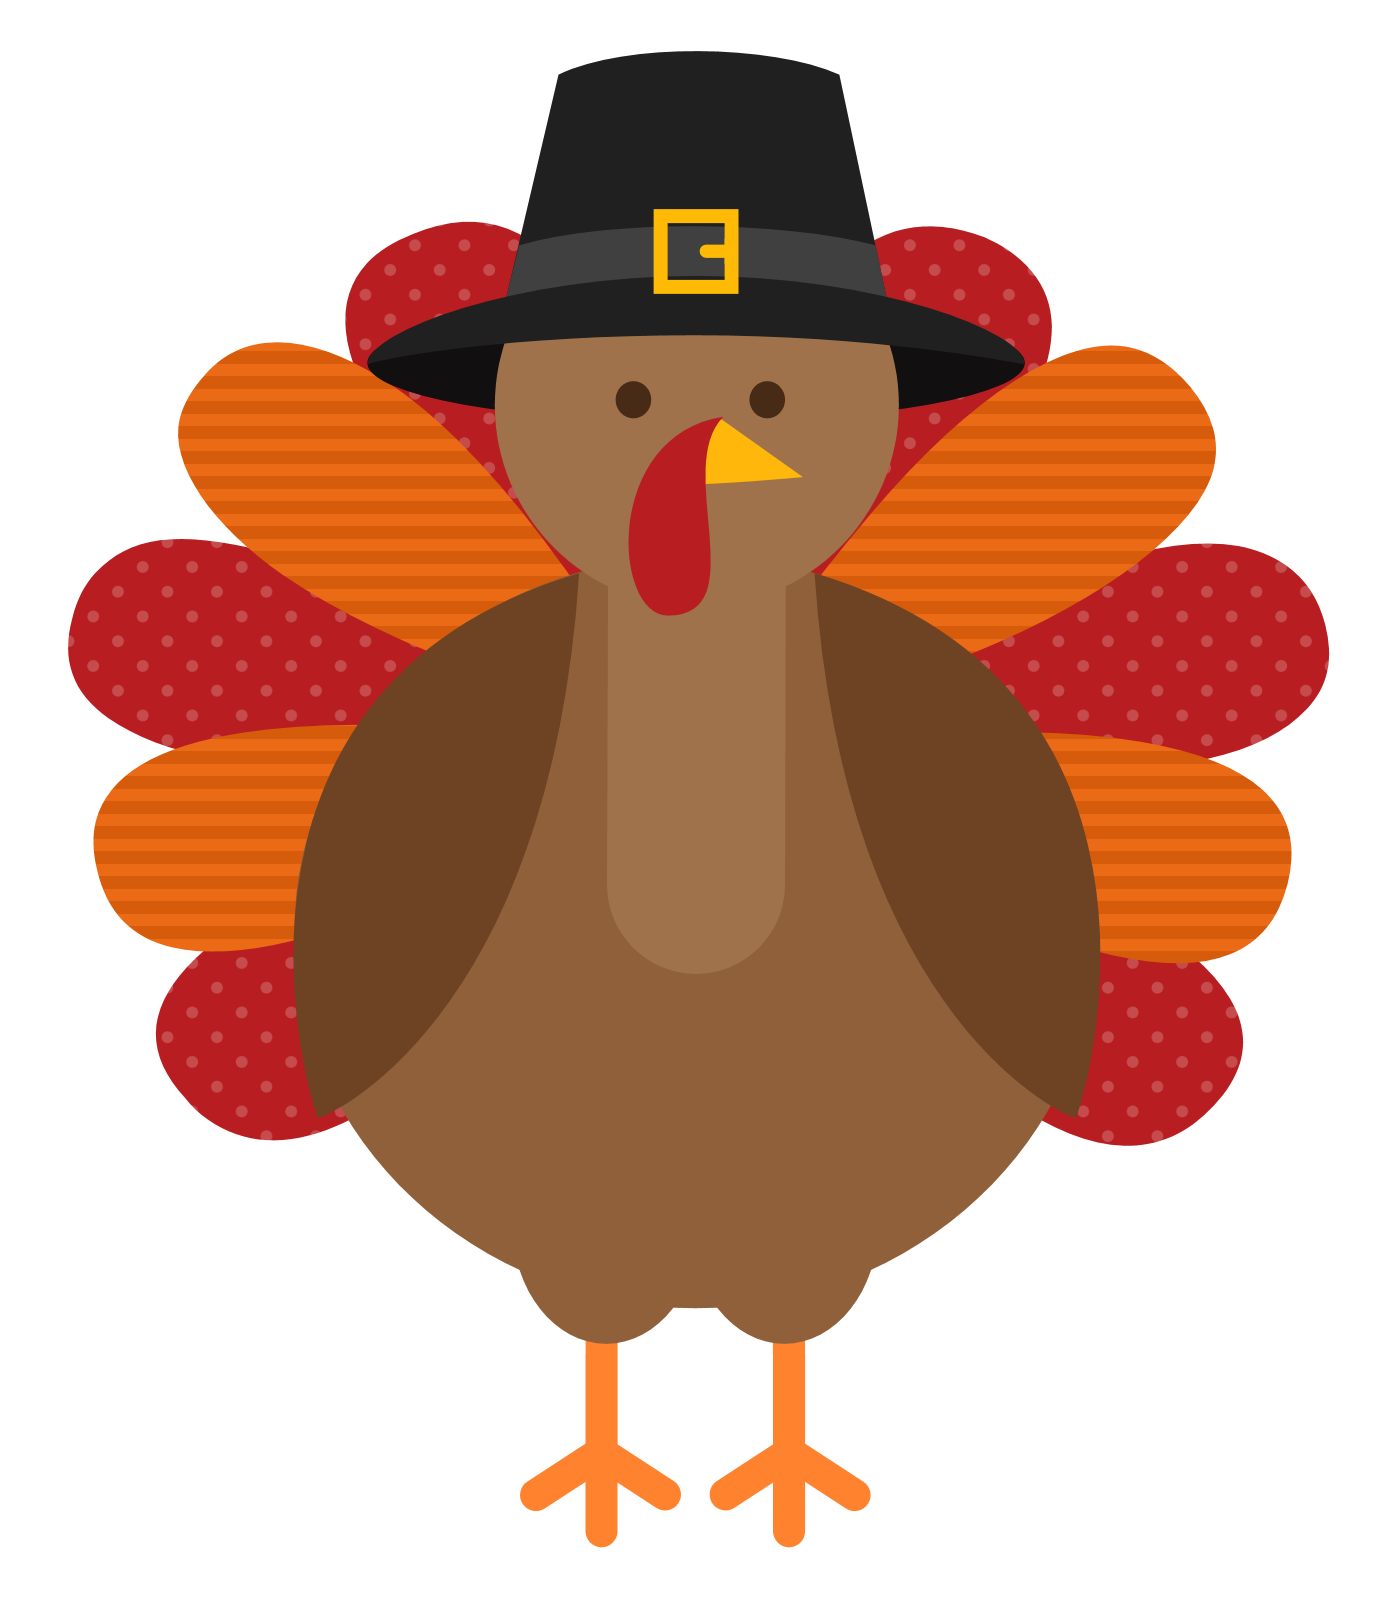 Thanksgiving Png Images PNG Image - Thanks Giving HD PNG